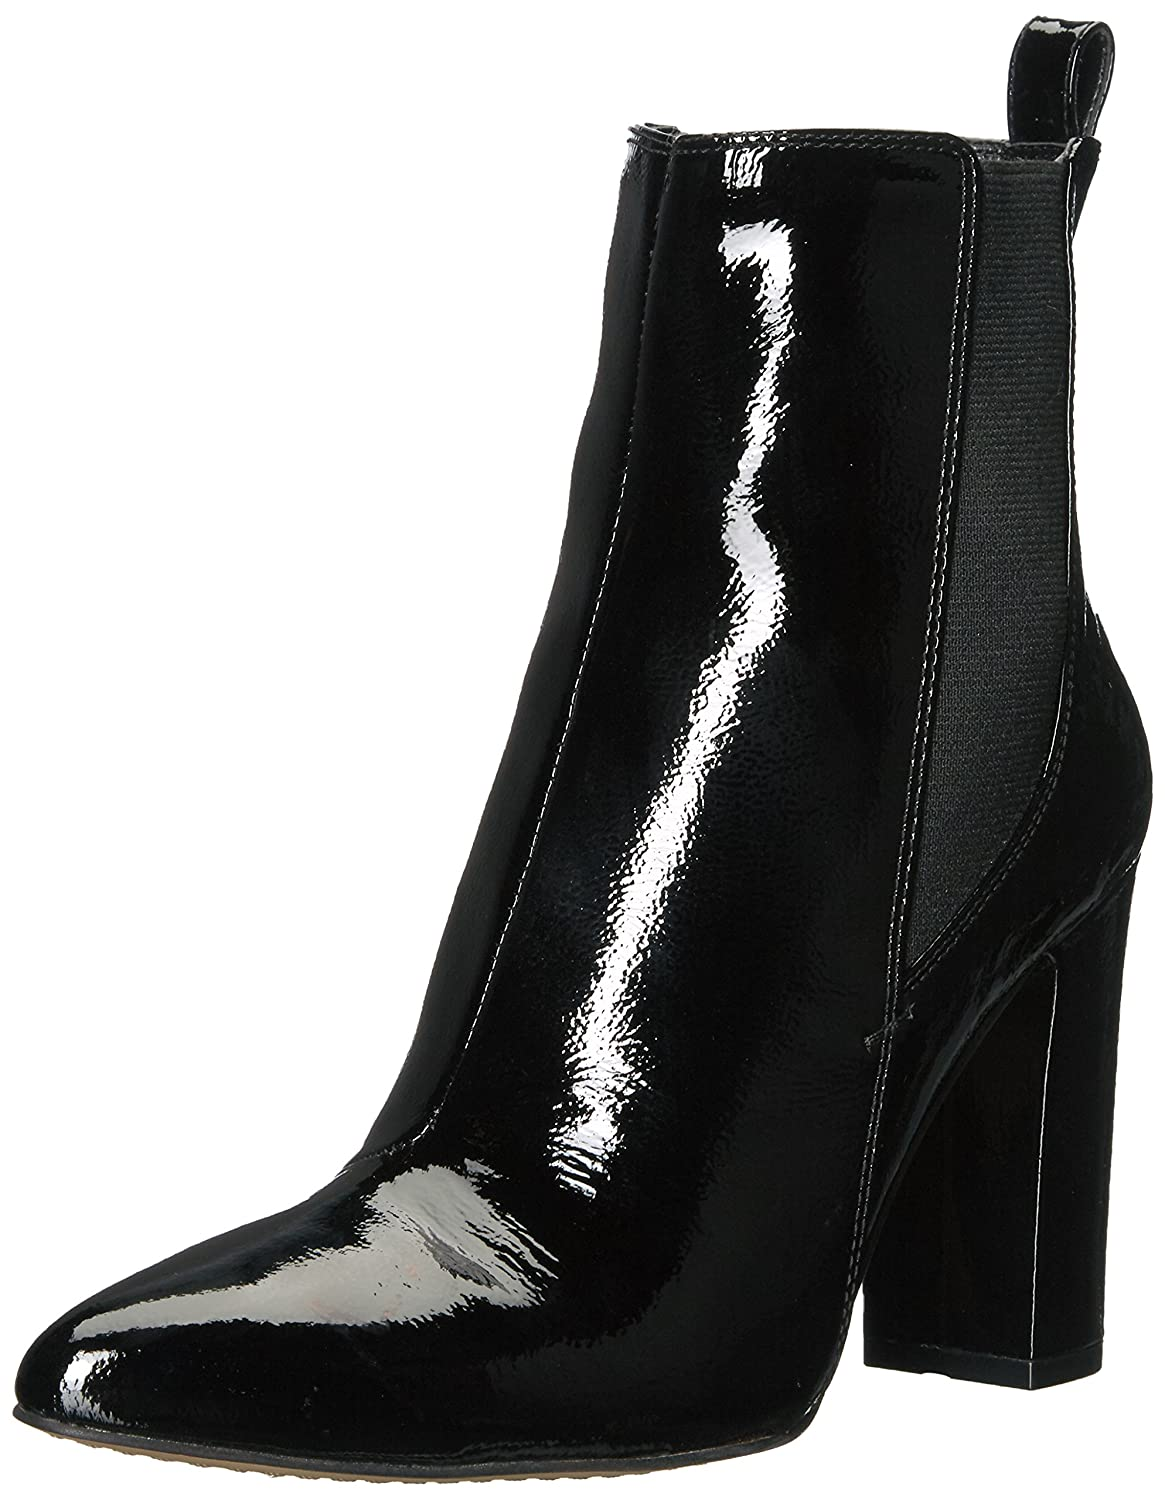 Vince Camuto Women's Britsy Ankle Boot B071SDK98G 5 B(M) US Carbone